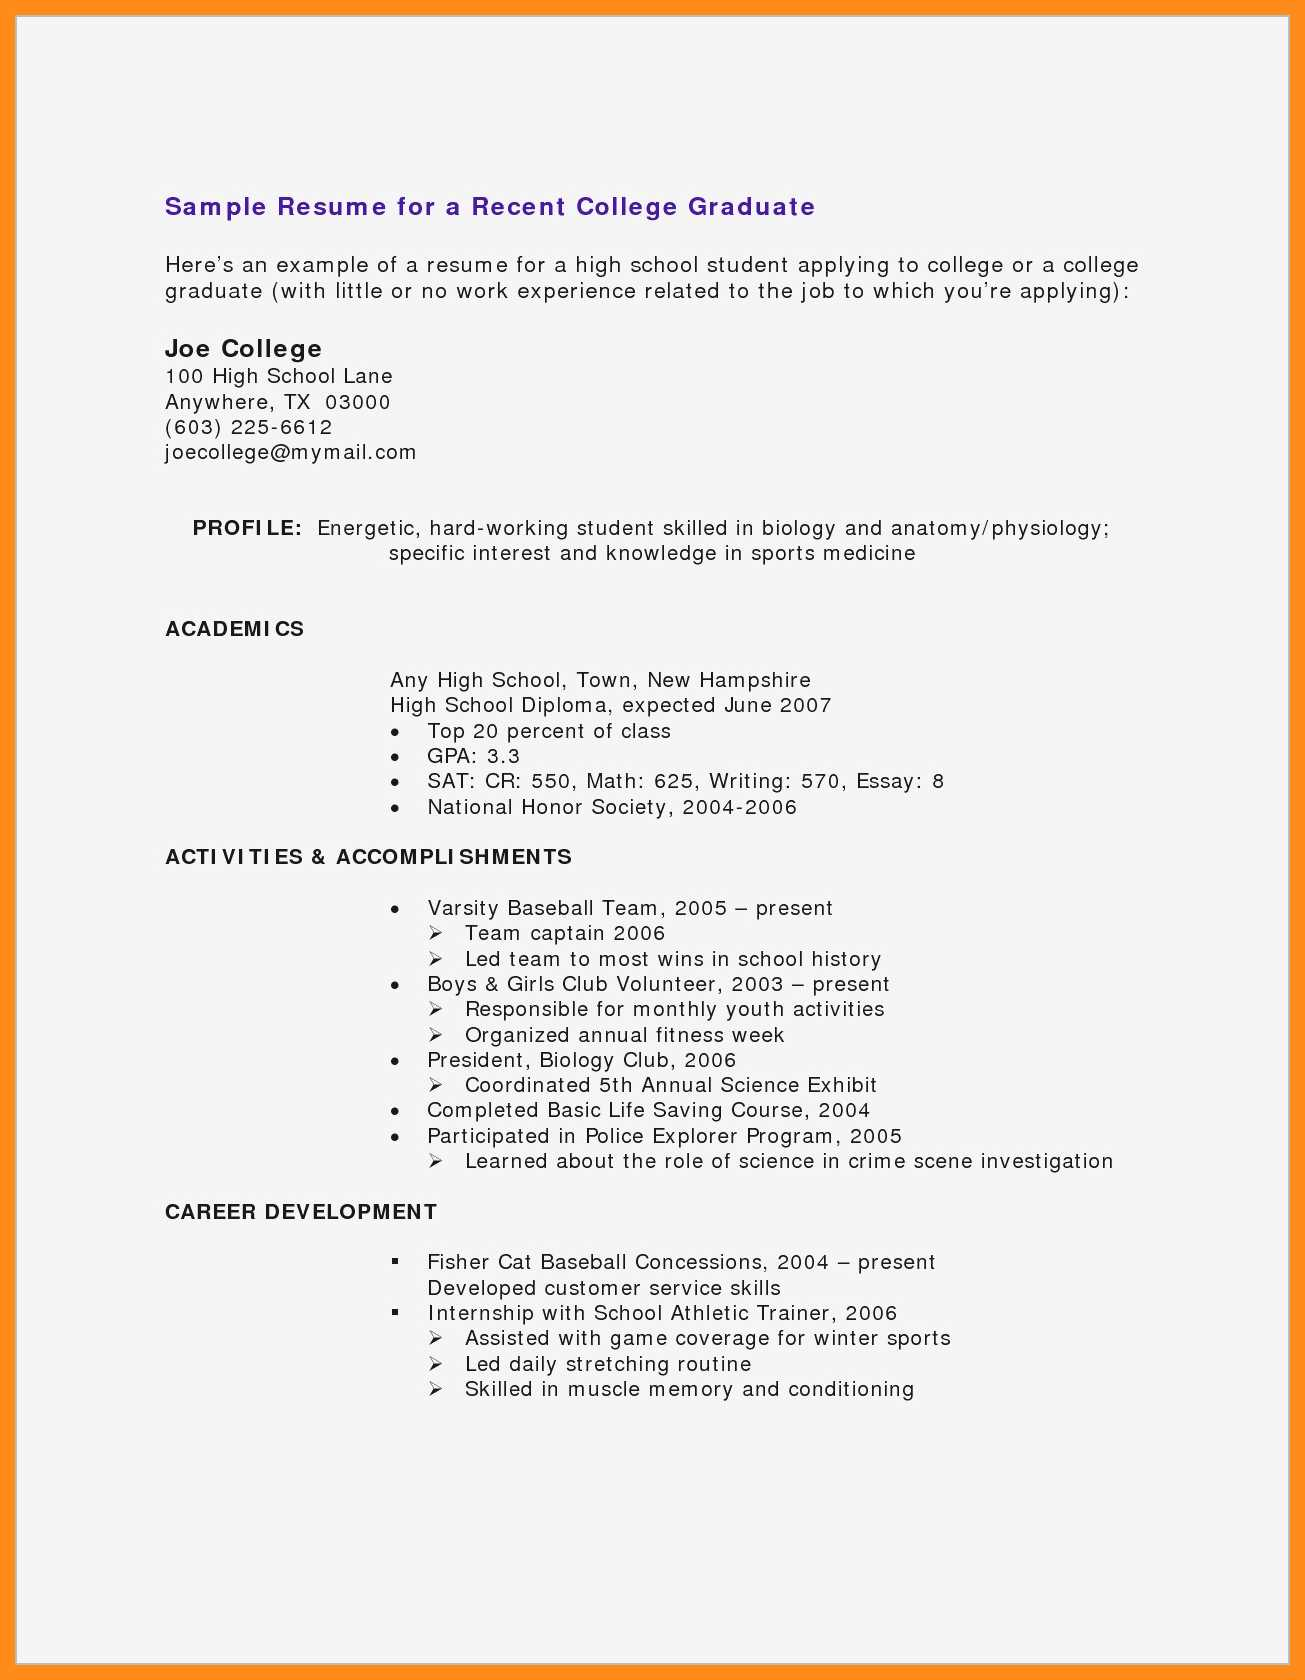 cv samples for students with no experience pdf sample resume applying summer job expanded Resume Sample Resume For Applying Summer Job